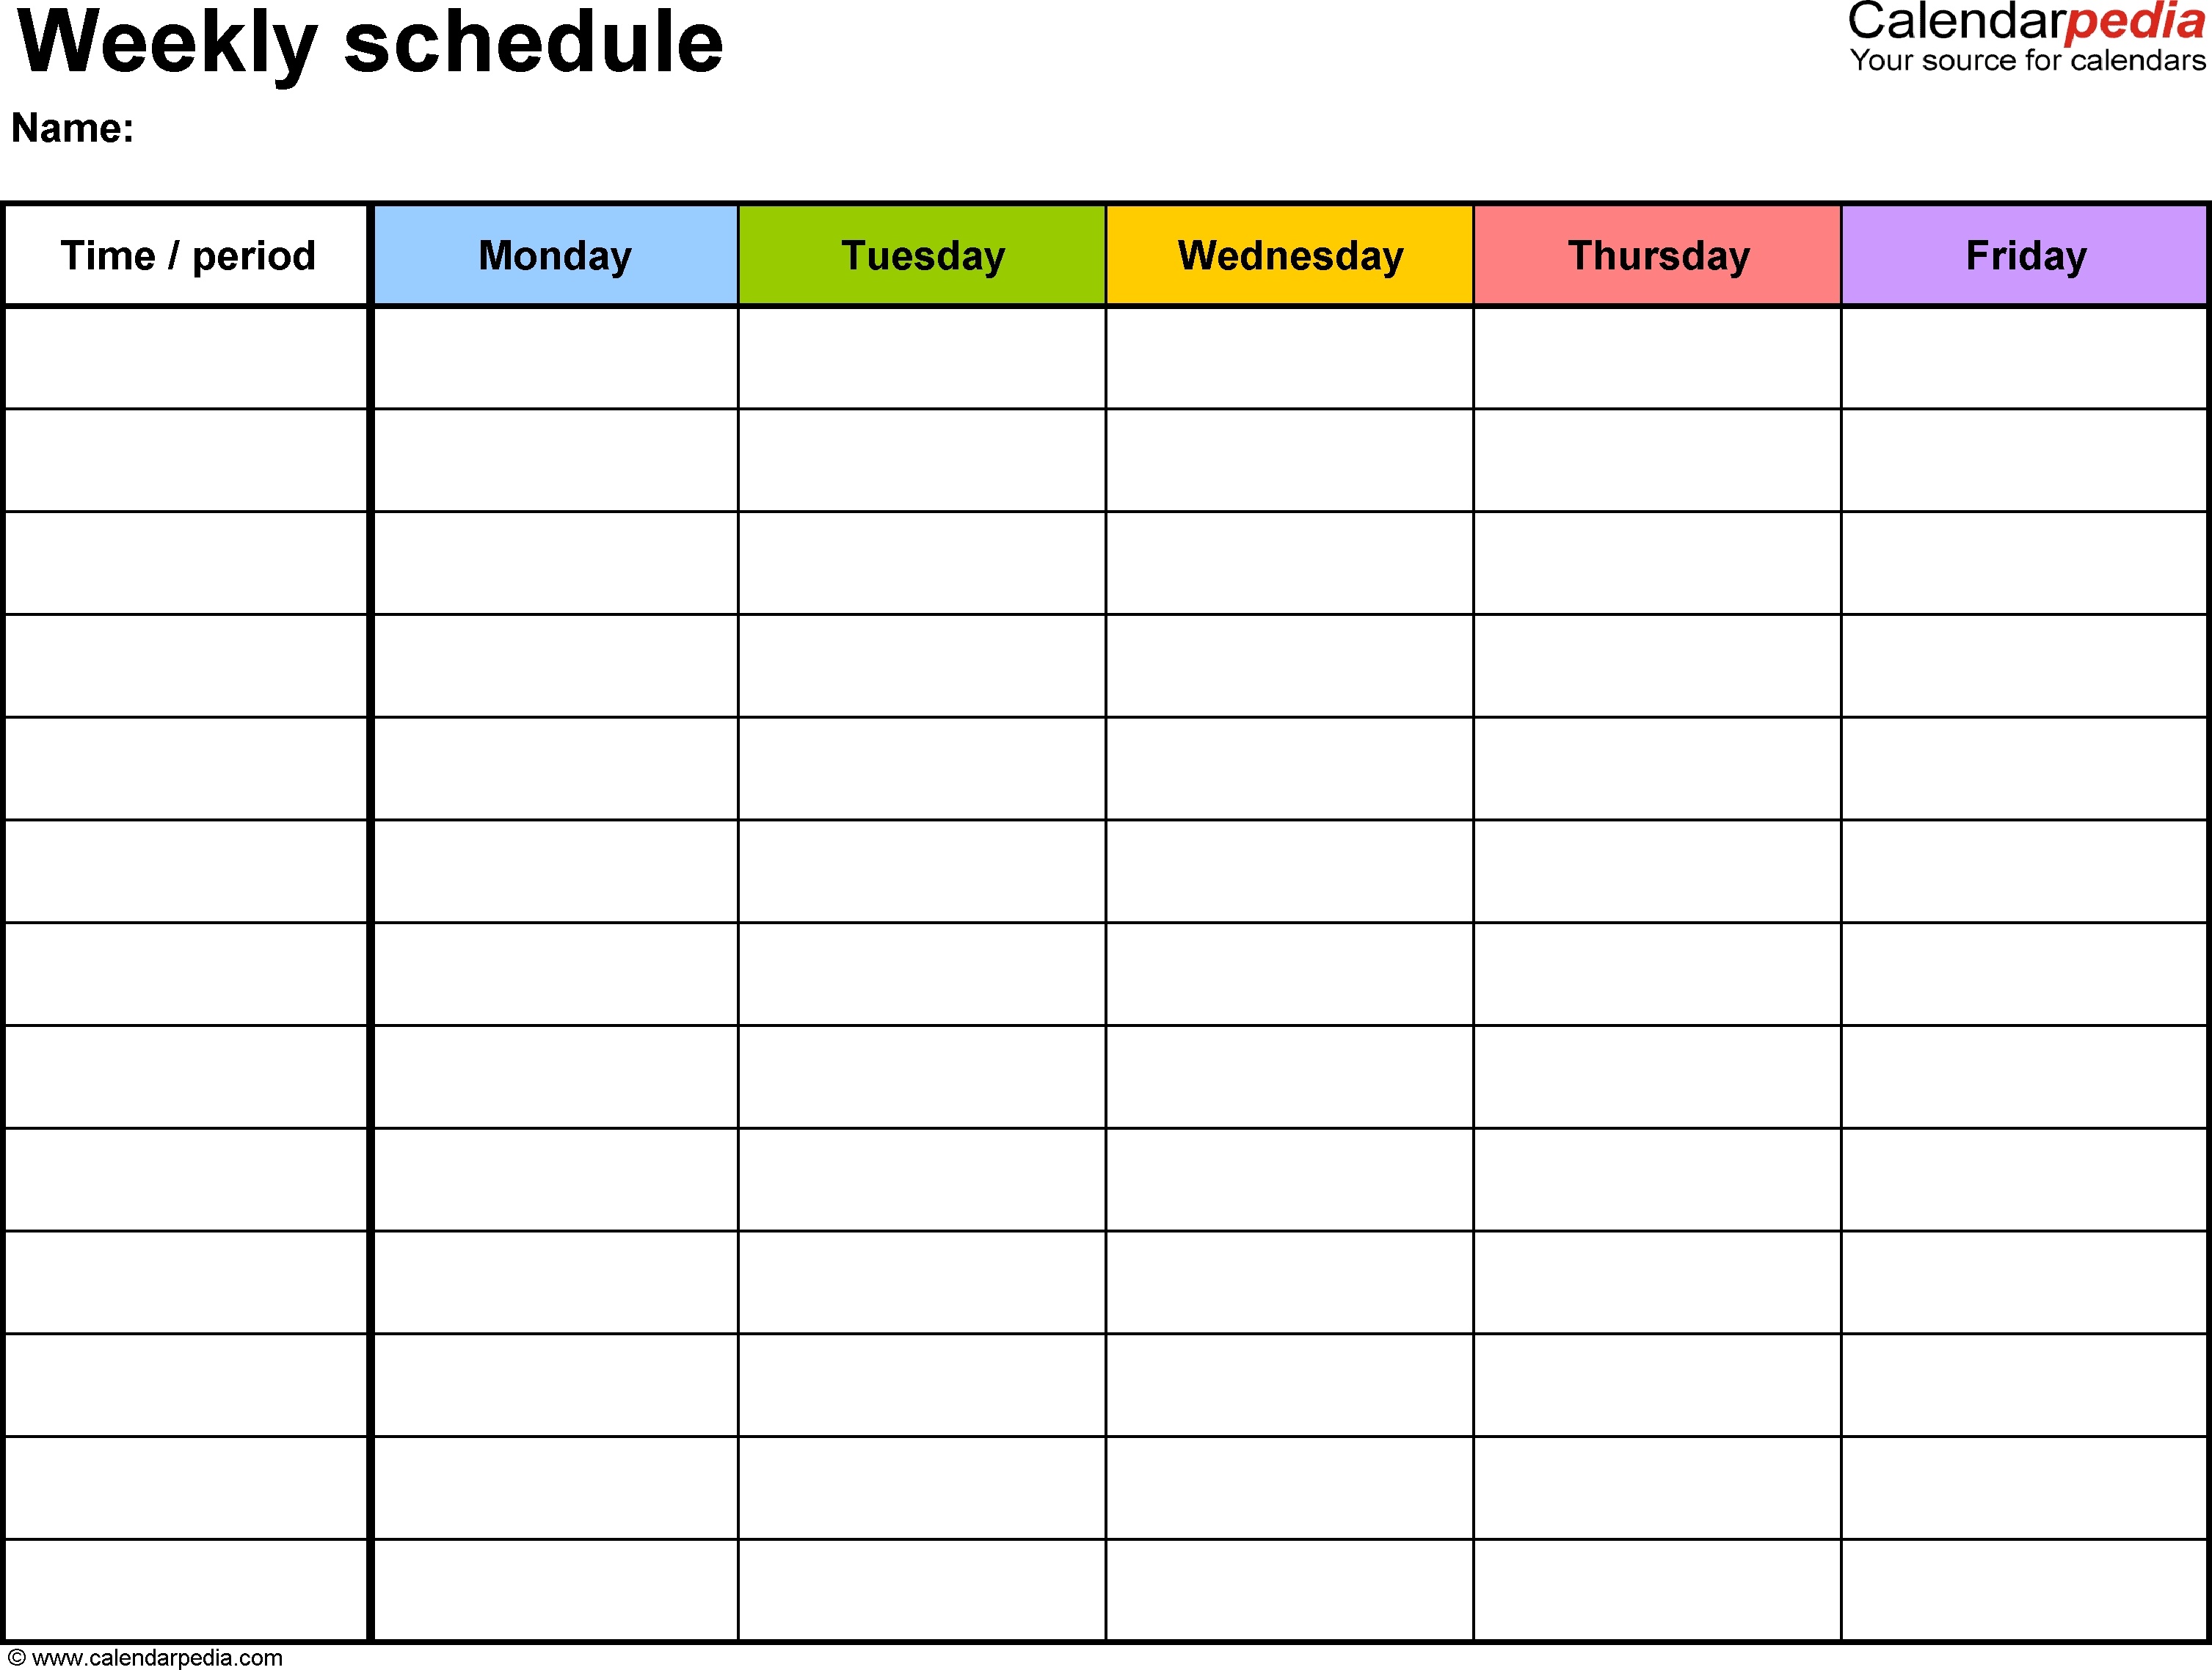 Free Weekly Schedule Templates For Excel - 18 Templates  Free Editable Monthly Calendar Template